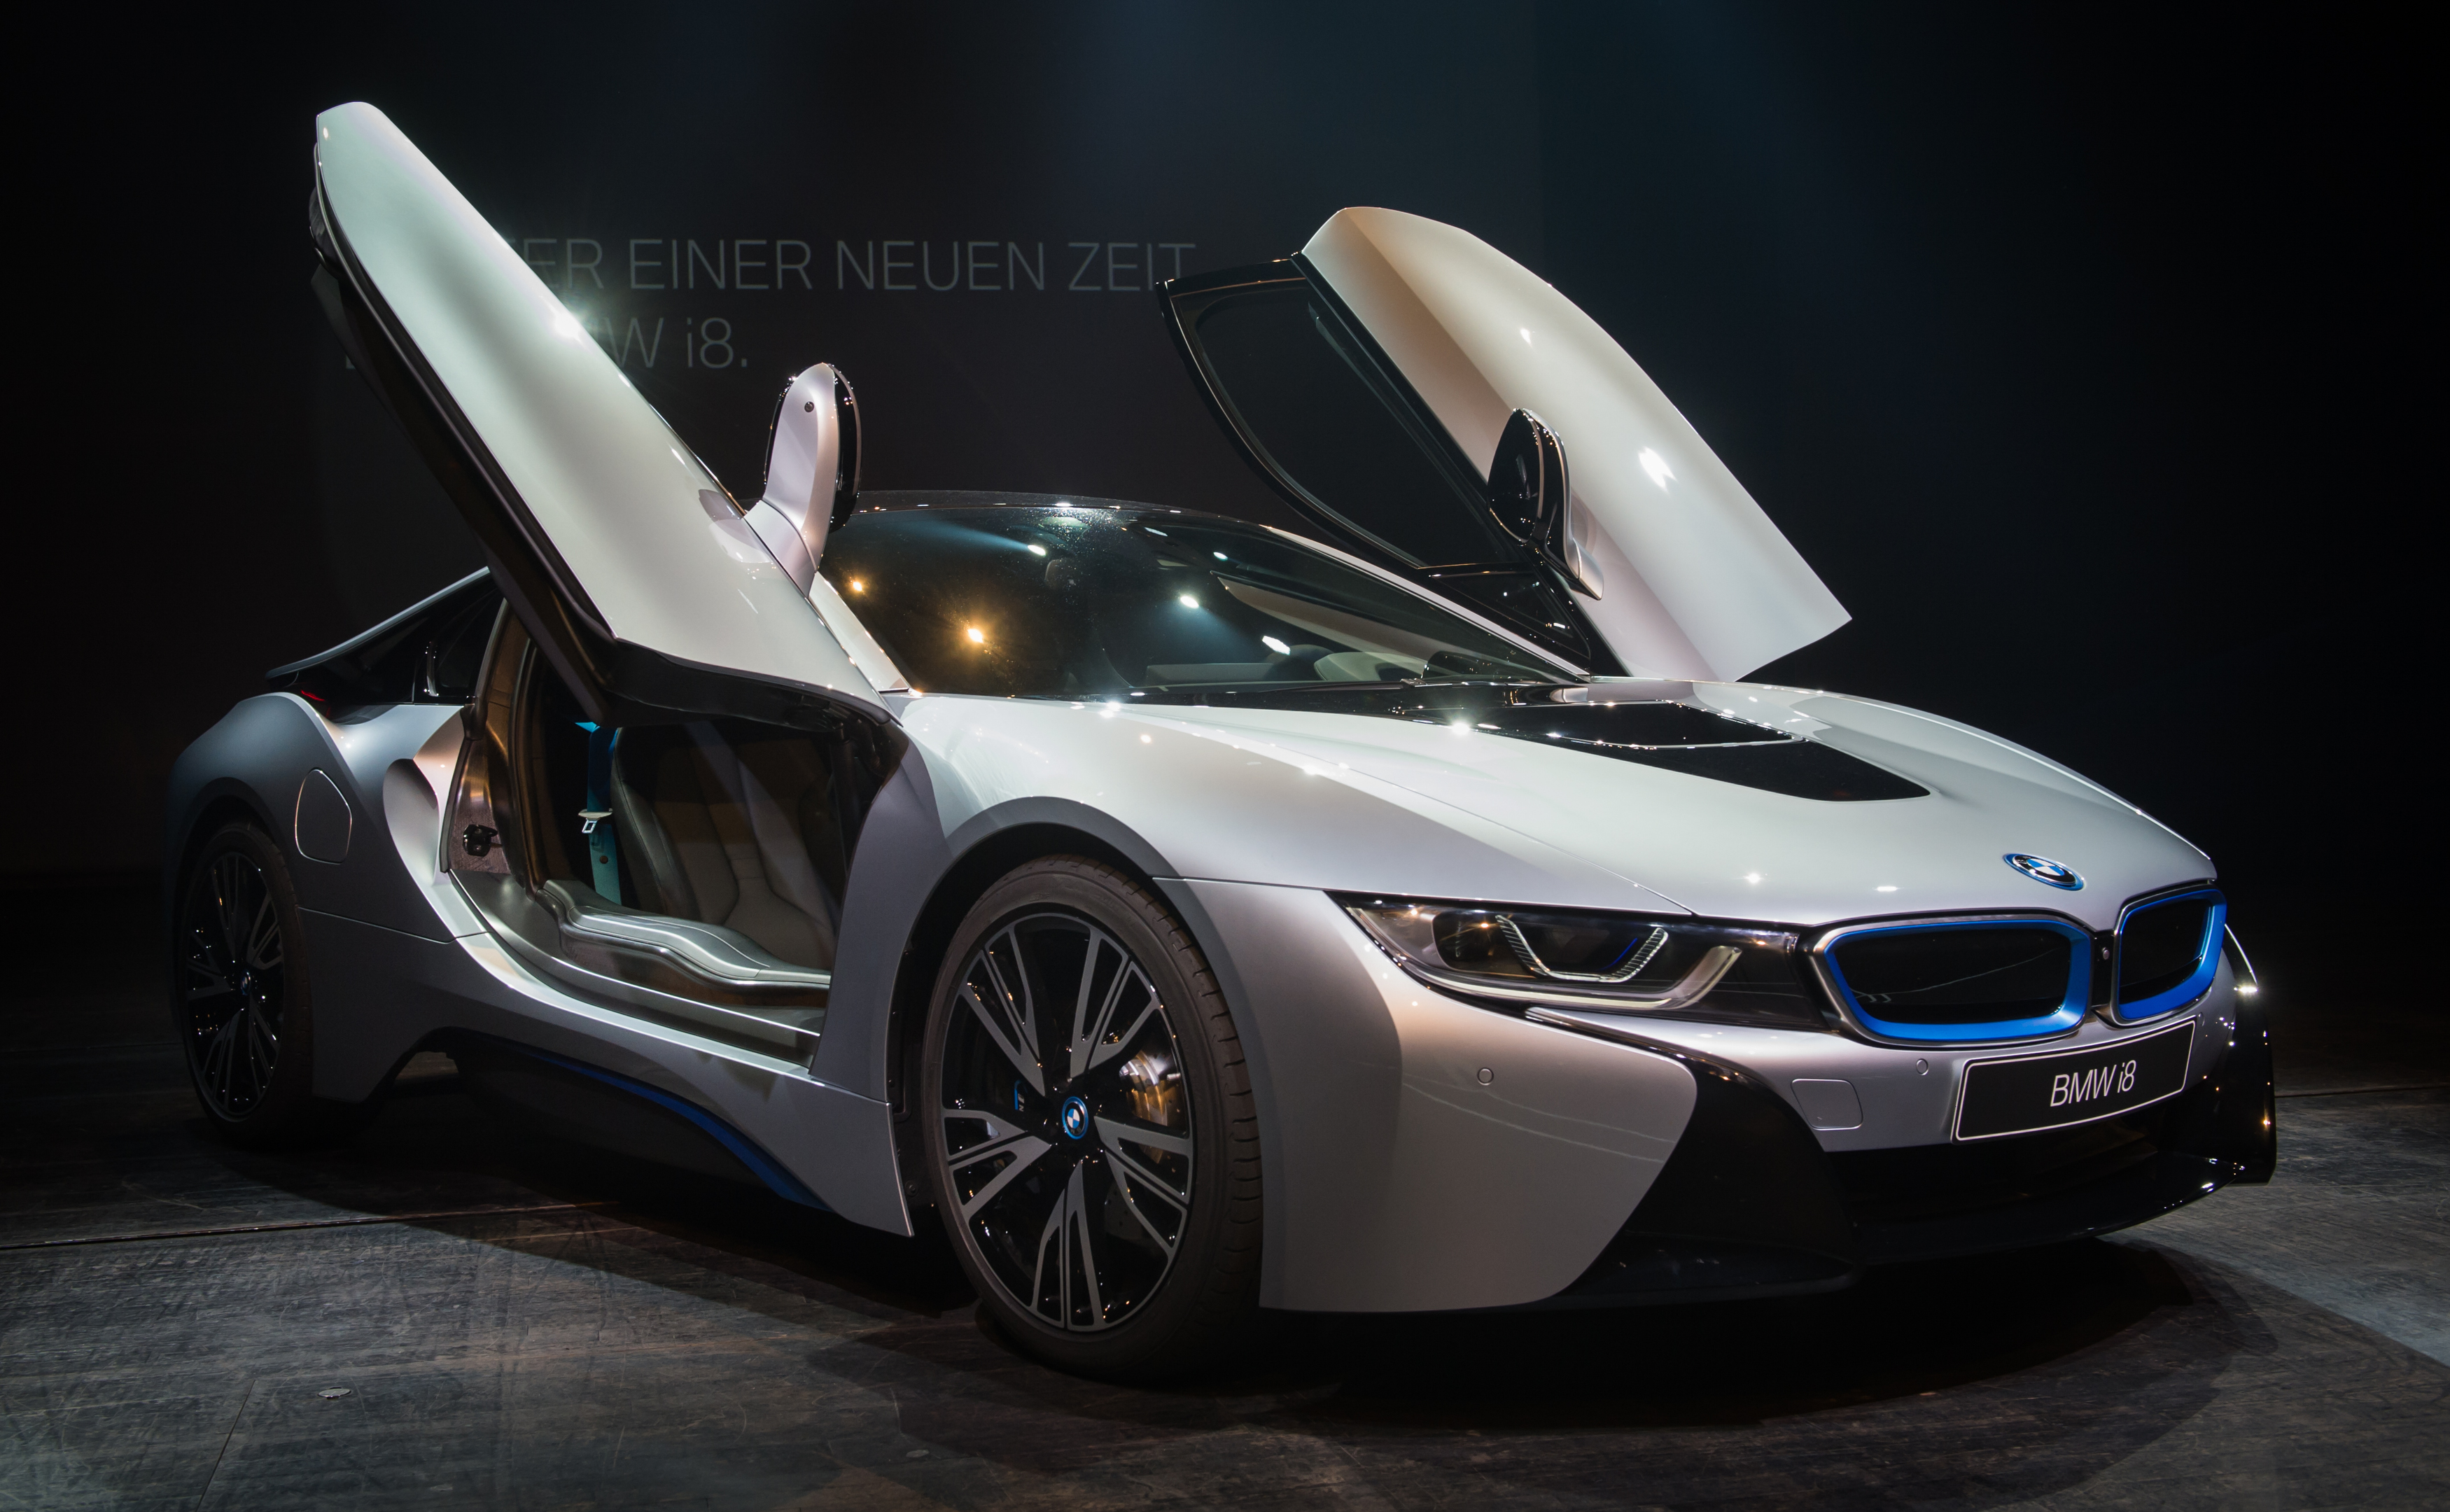 a bmw i8 plug in hybrid sports car is displayed at bmw world on june